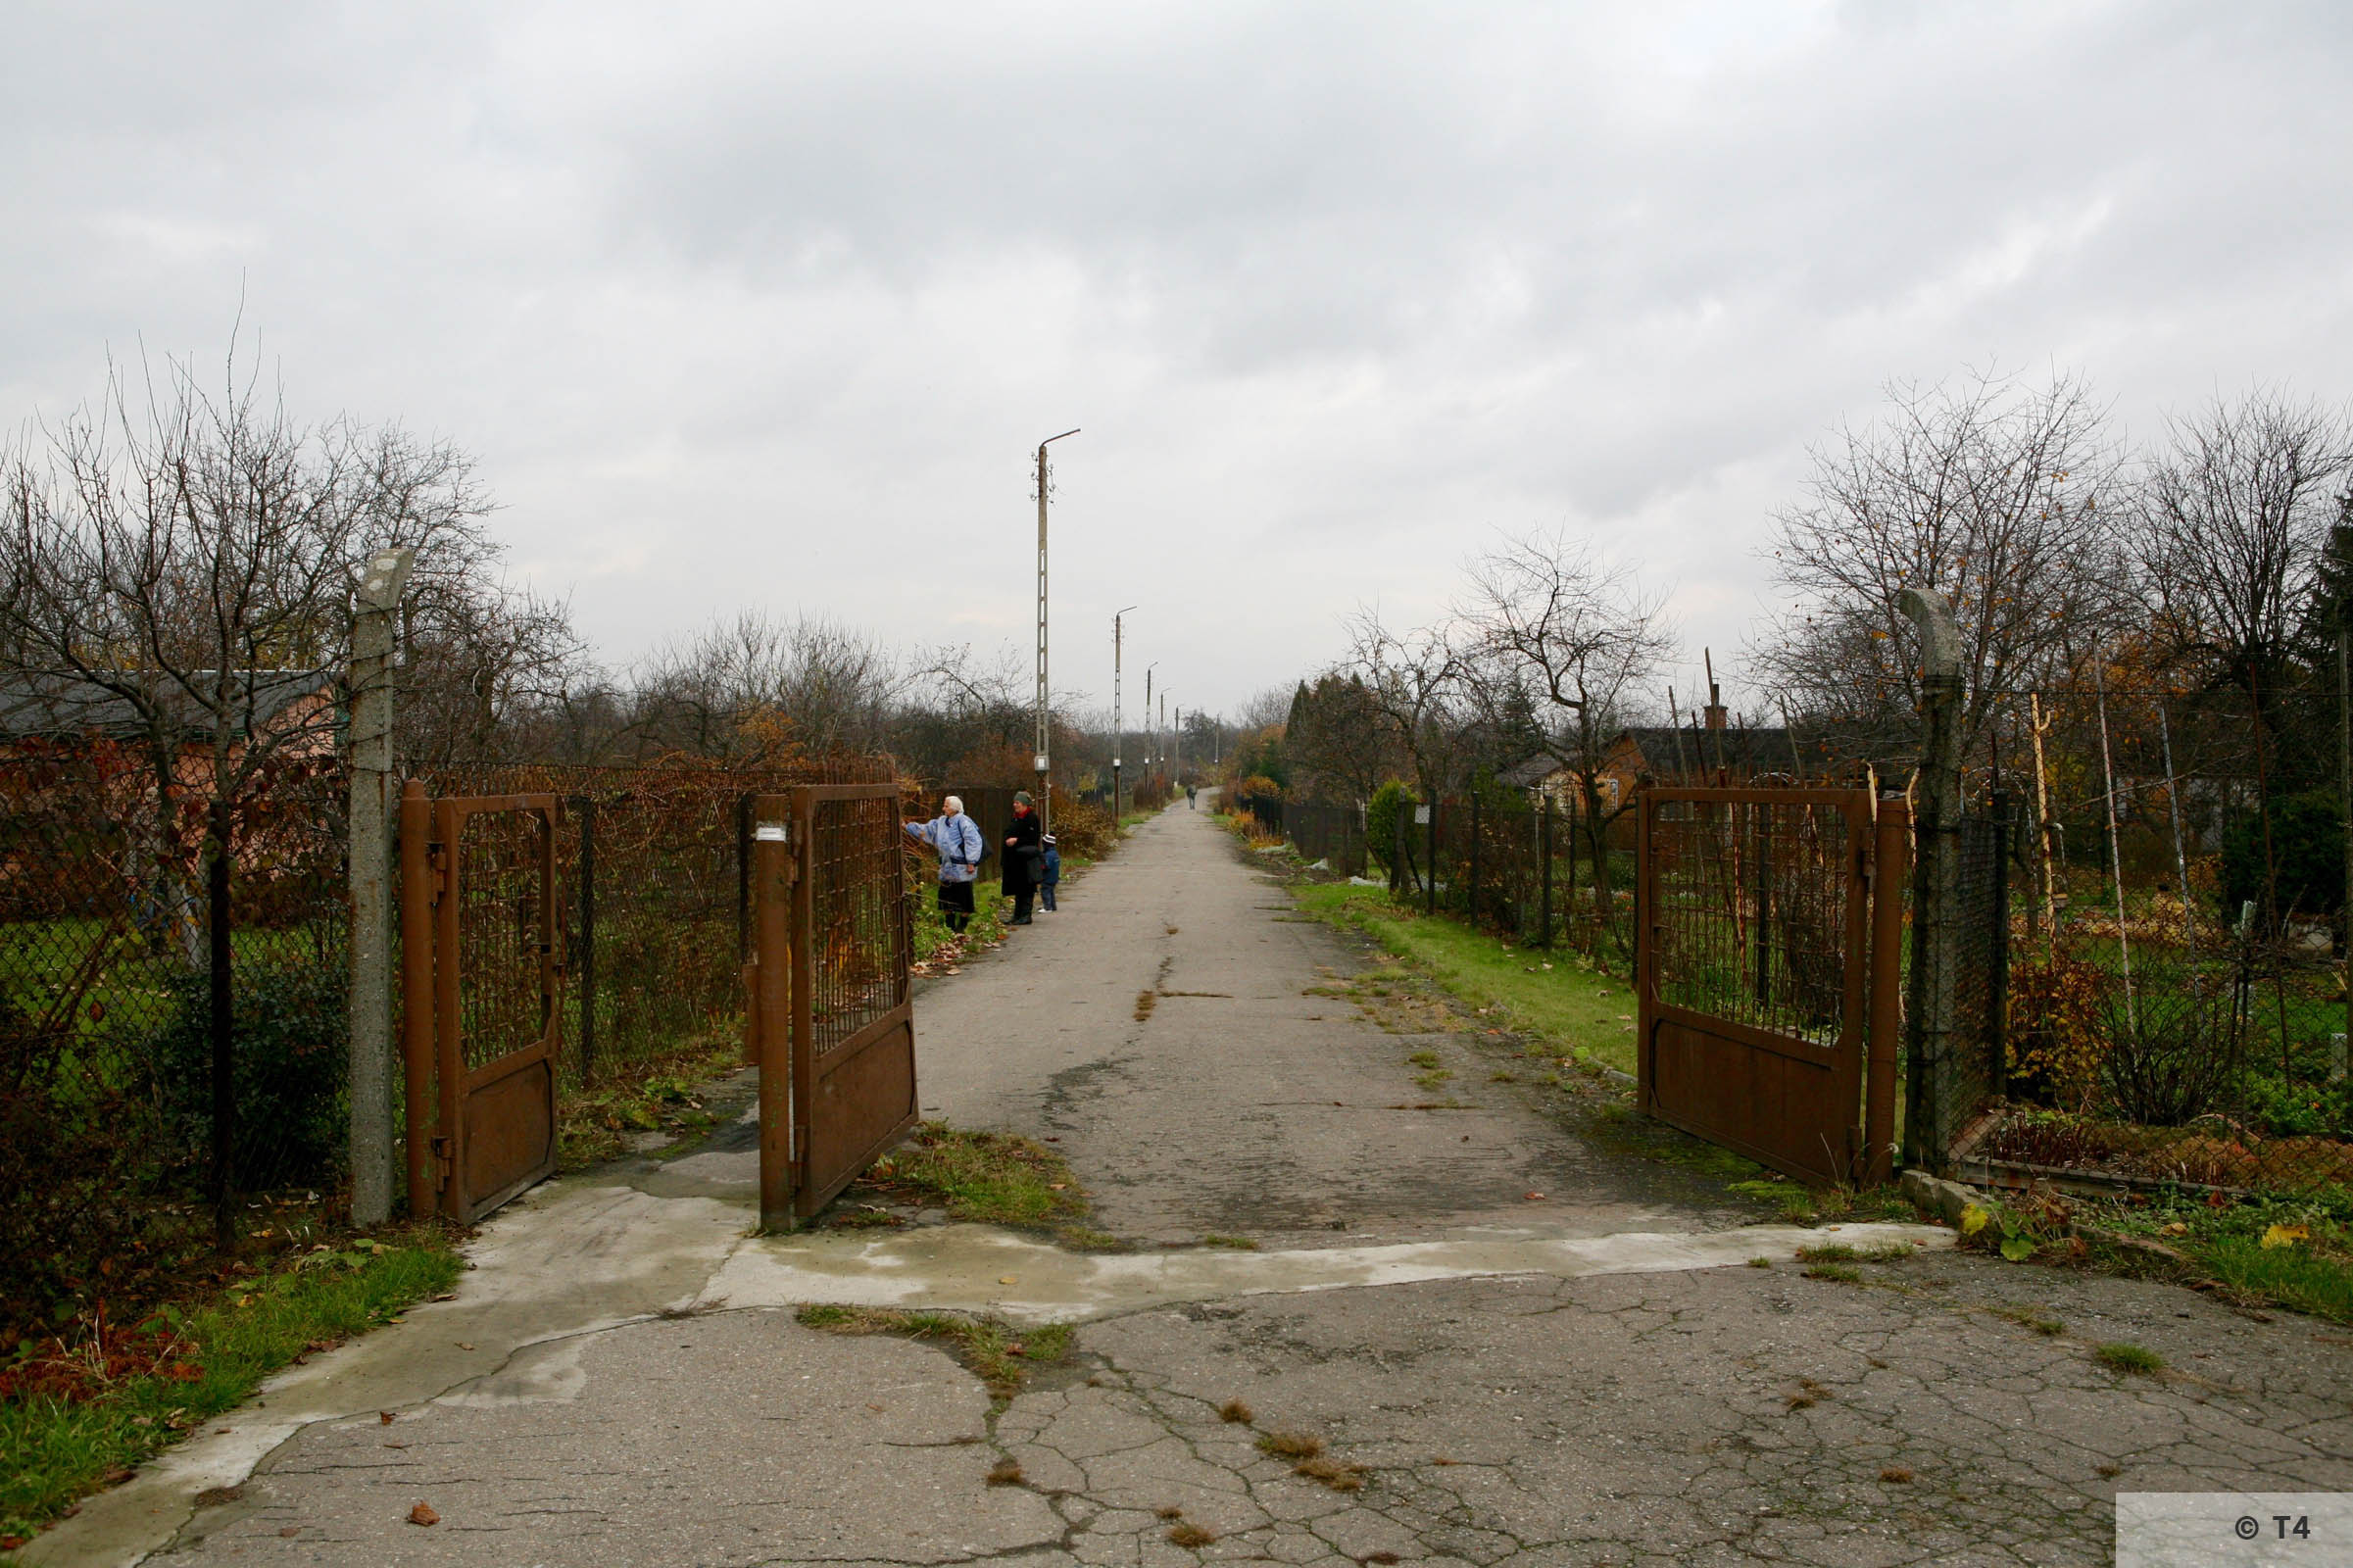 Area of former sub camp Glelwitz IV now allotments. 2007 T4 3021